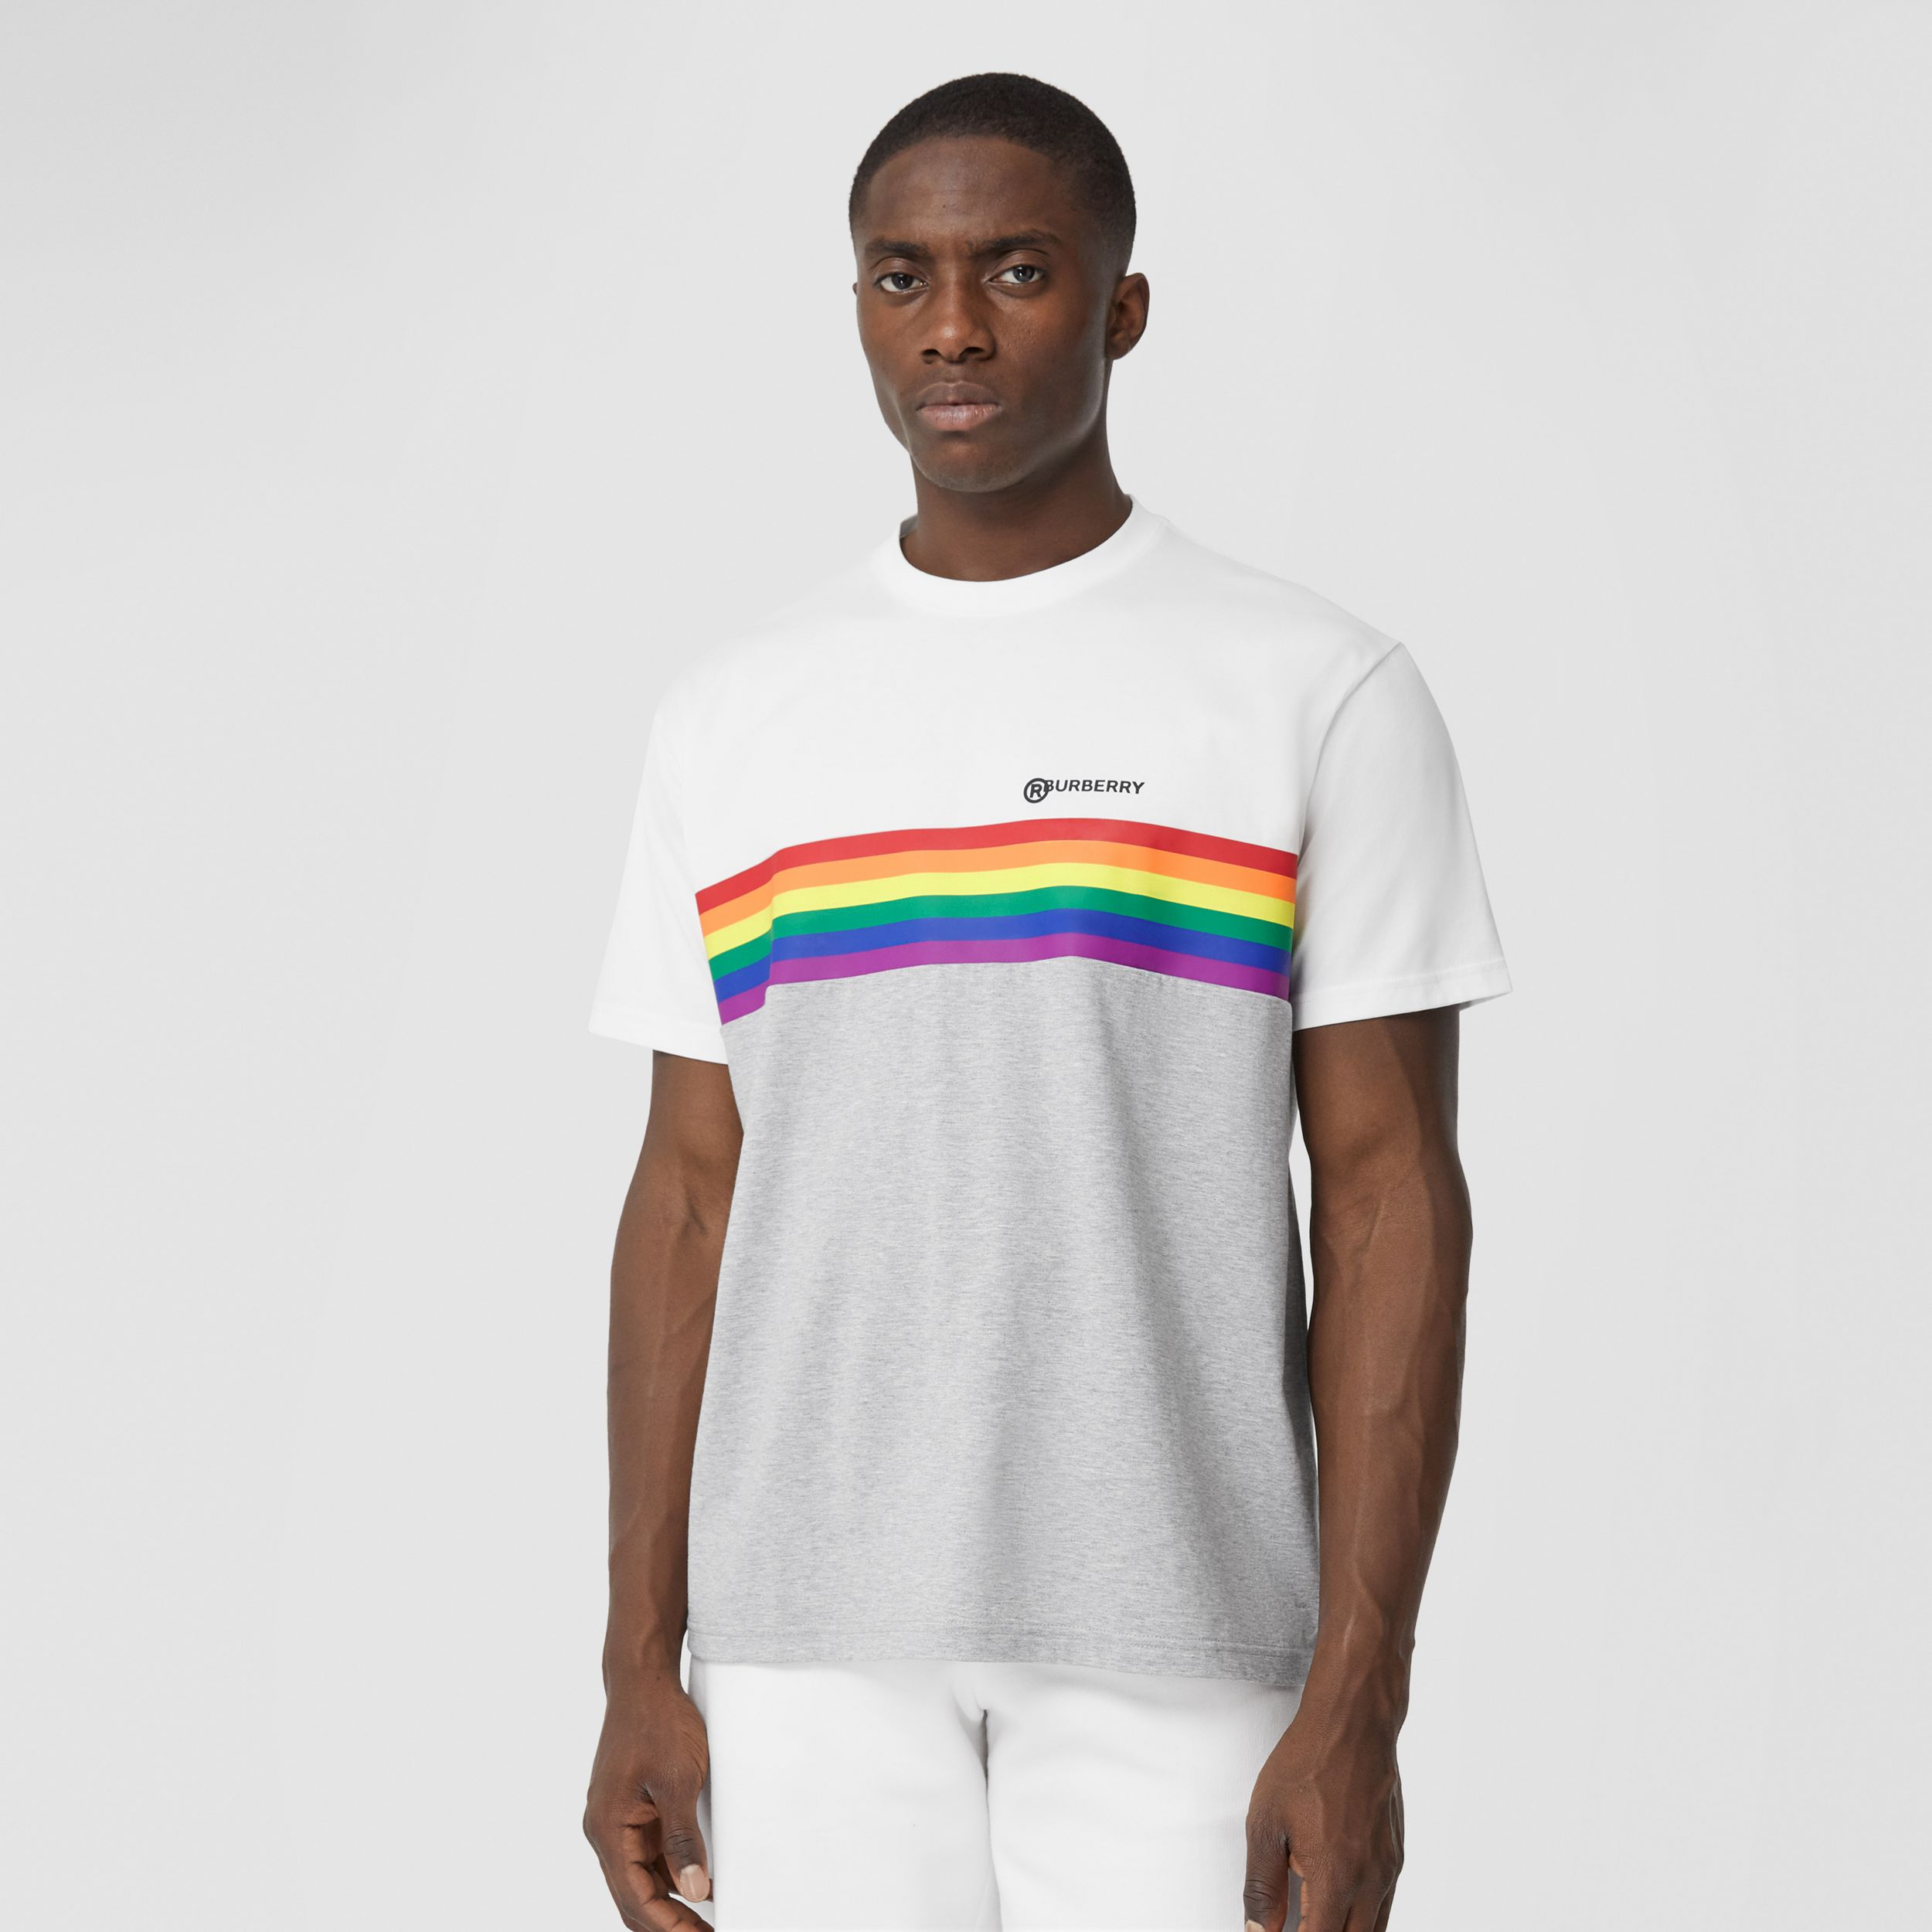 Rainbow Stripe Print Cotton T-shirt – Unisex in White | Burberry United Kingdom - 4